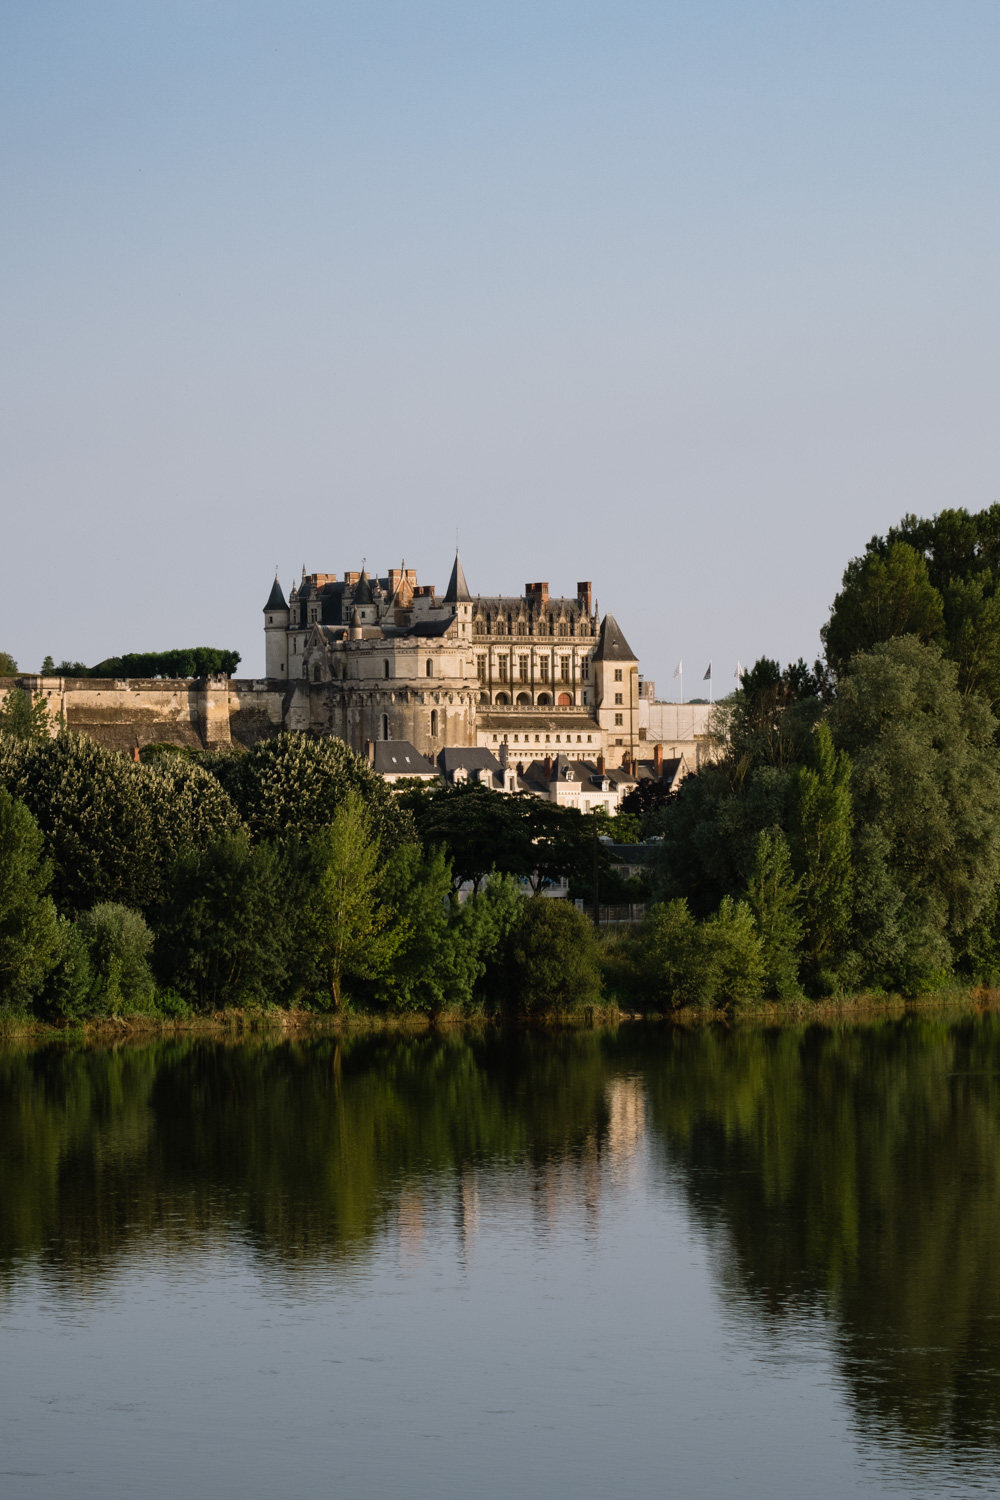 "Château d'Amboise from across the Loire River. Travel photography and guide by © Natasha Lequepeys for ""And Then I Met Yoko"". #loirevalley #france #travelguide #photoblog #travelblog #travelphotography #landscapephotography #architecturephotography #travelitinerary #fujifilm #valdeloire #loire #chambord #chenonceau #cheverny #chaumont #chateau #castles #discoverfrance #honeymoondestination"